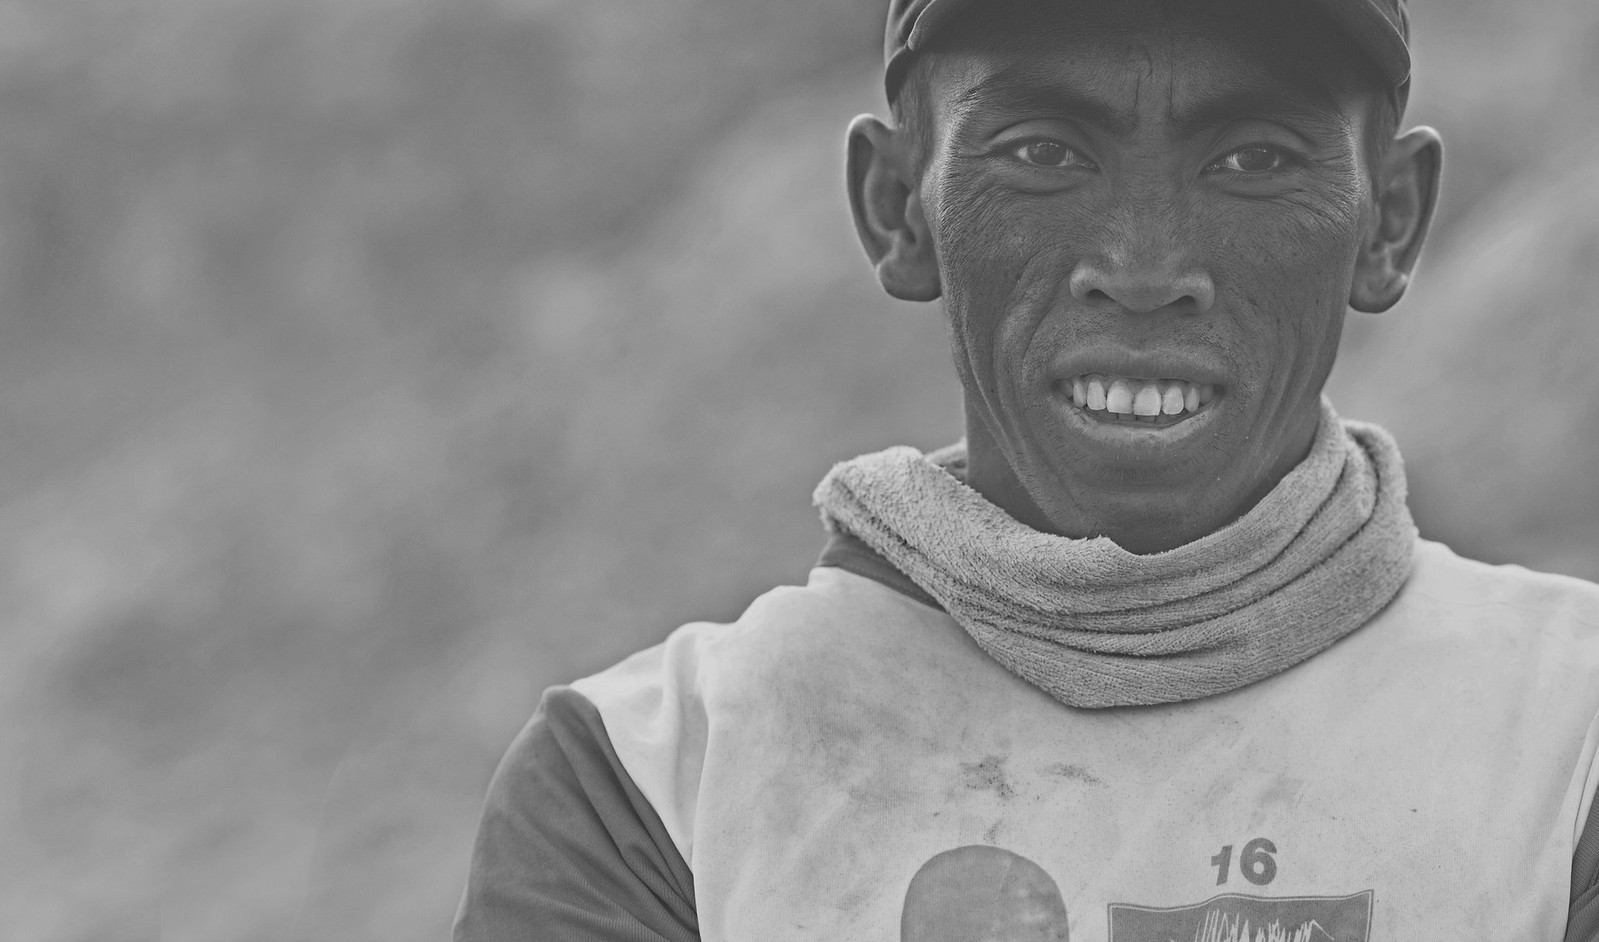 Worker, Ijen, Indonesia